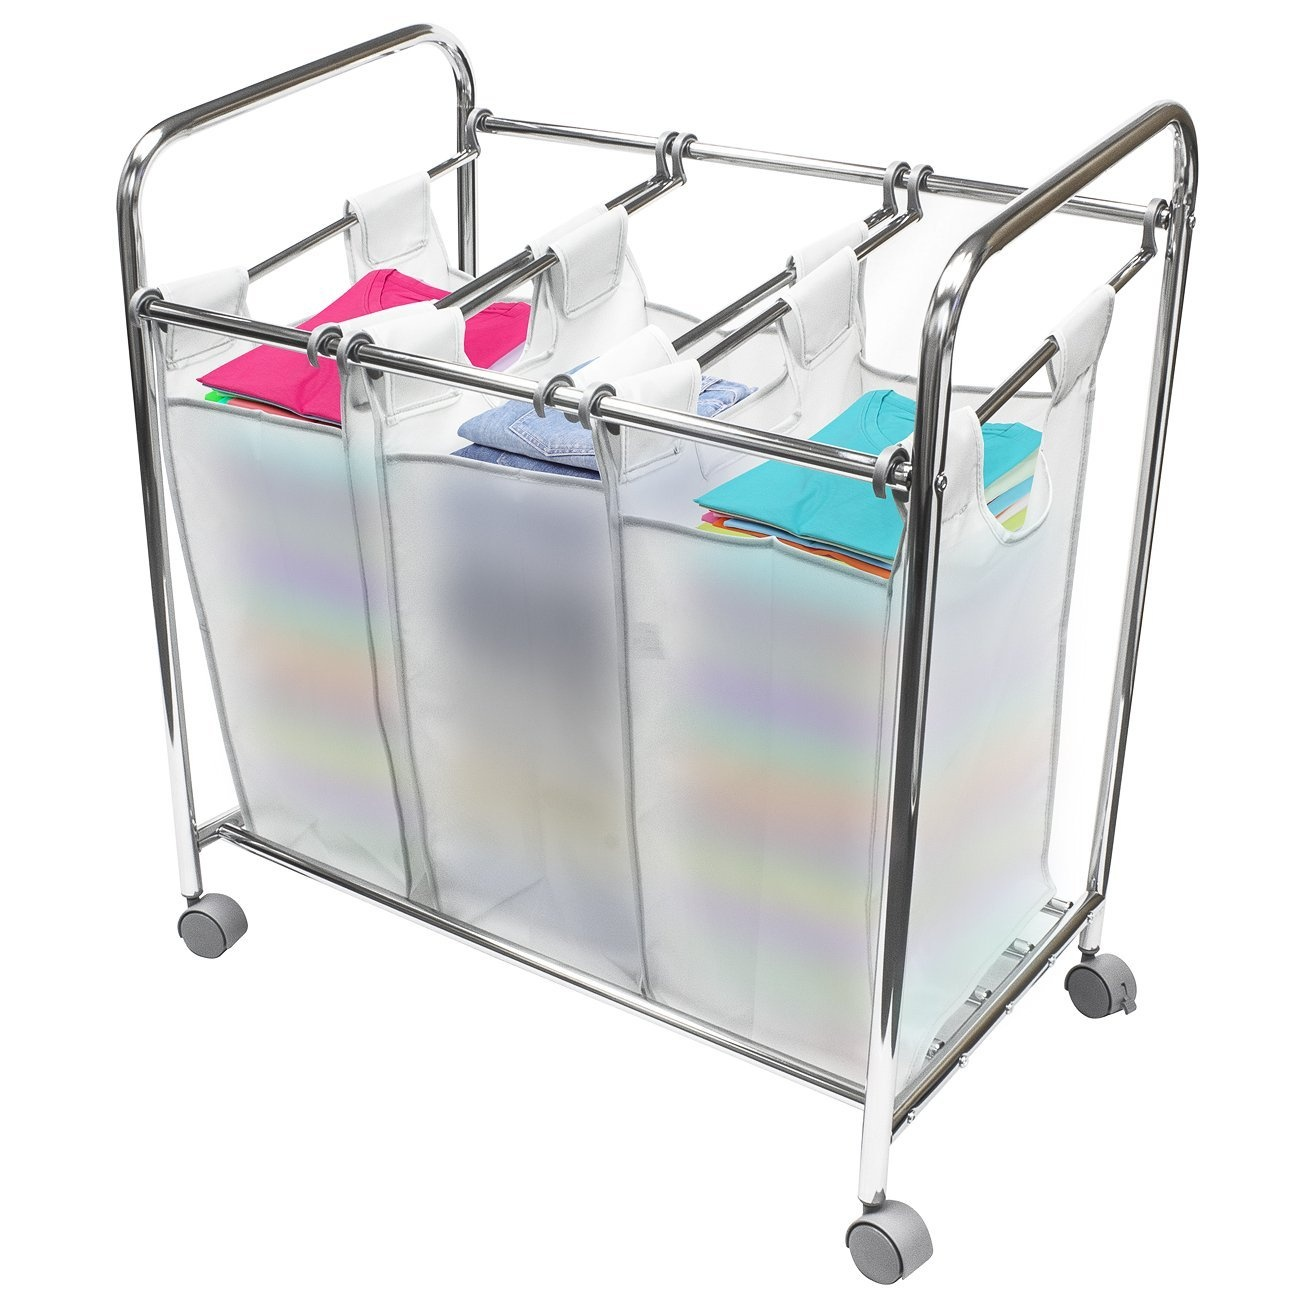 Hamper On Wheels Sorbus Laundry Sorter Cart Basket Hamper On Wheels